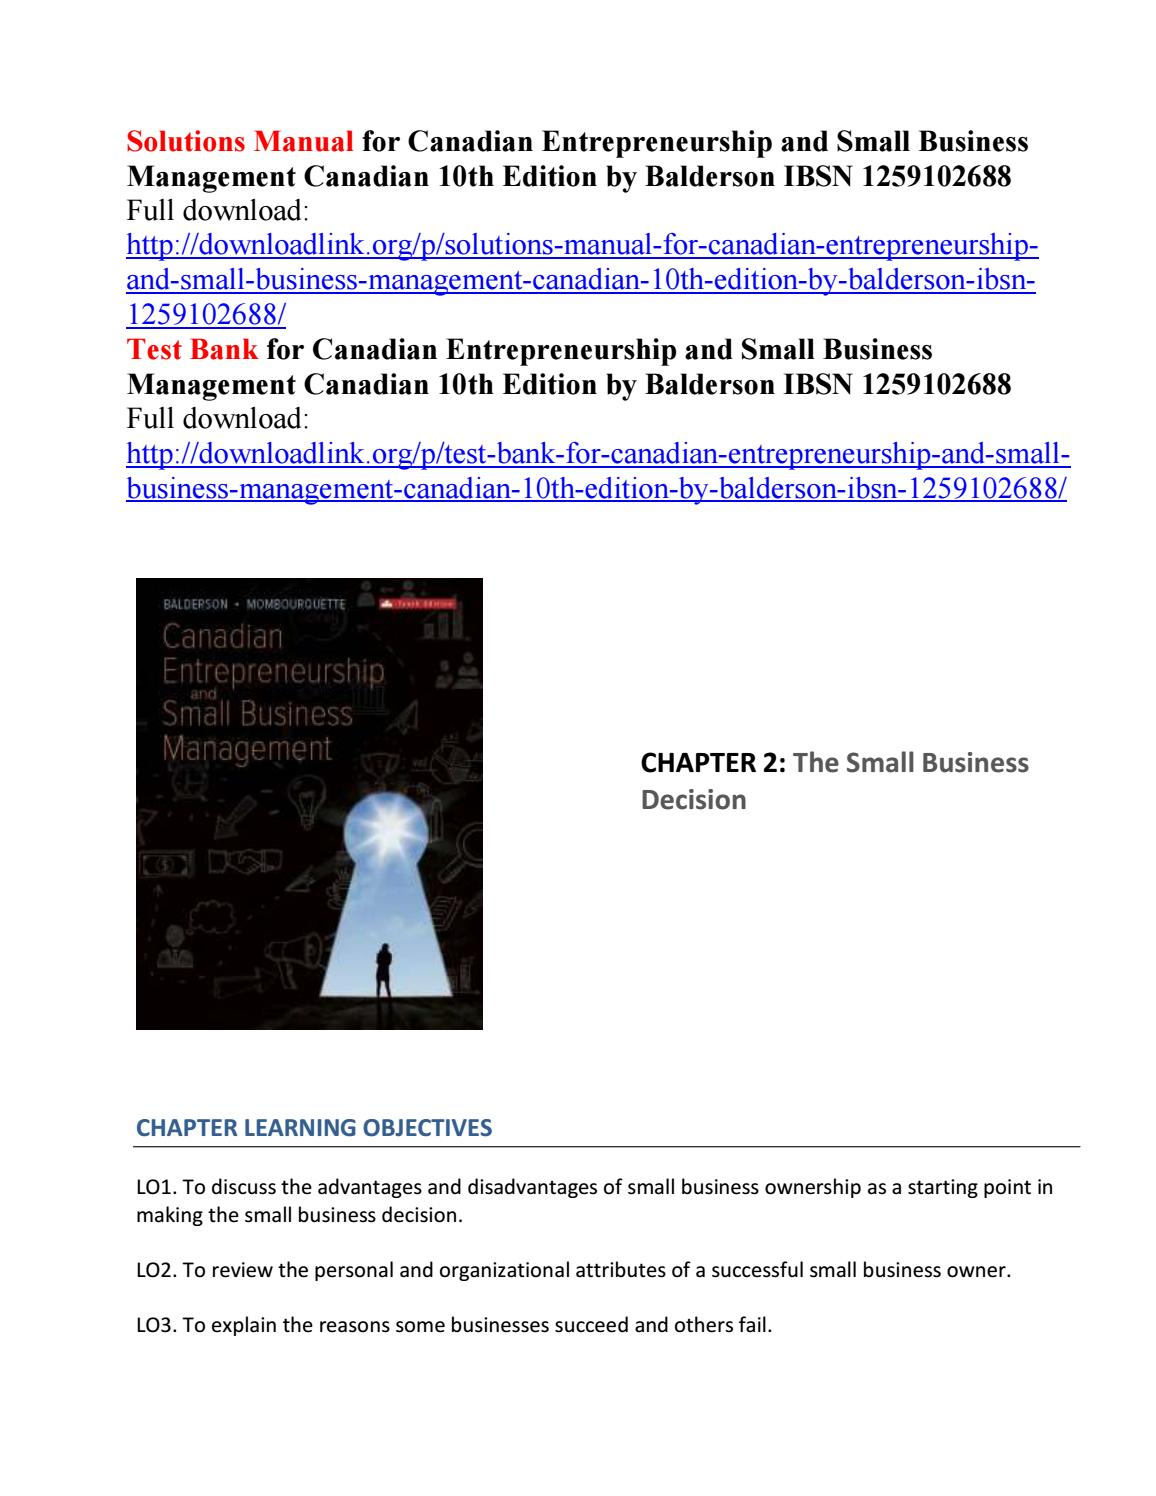 Solutions manual for canadian entrepreneurship and small